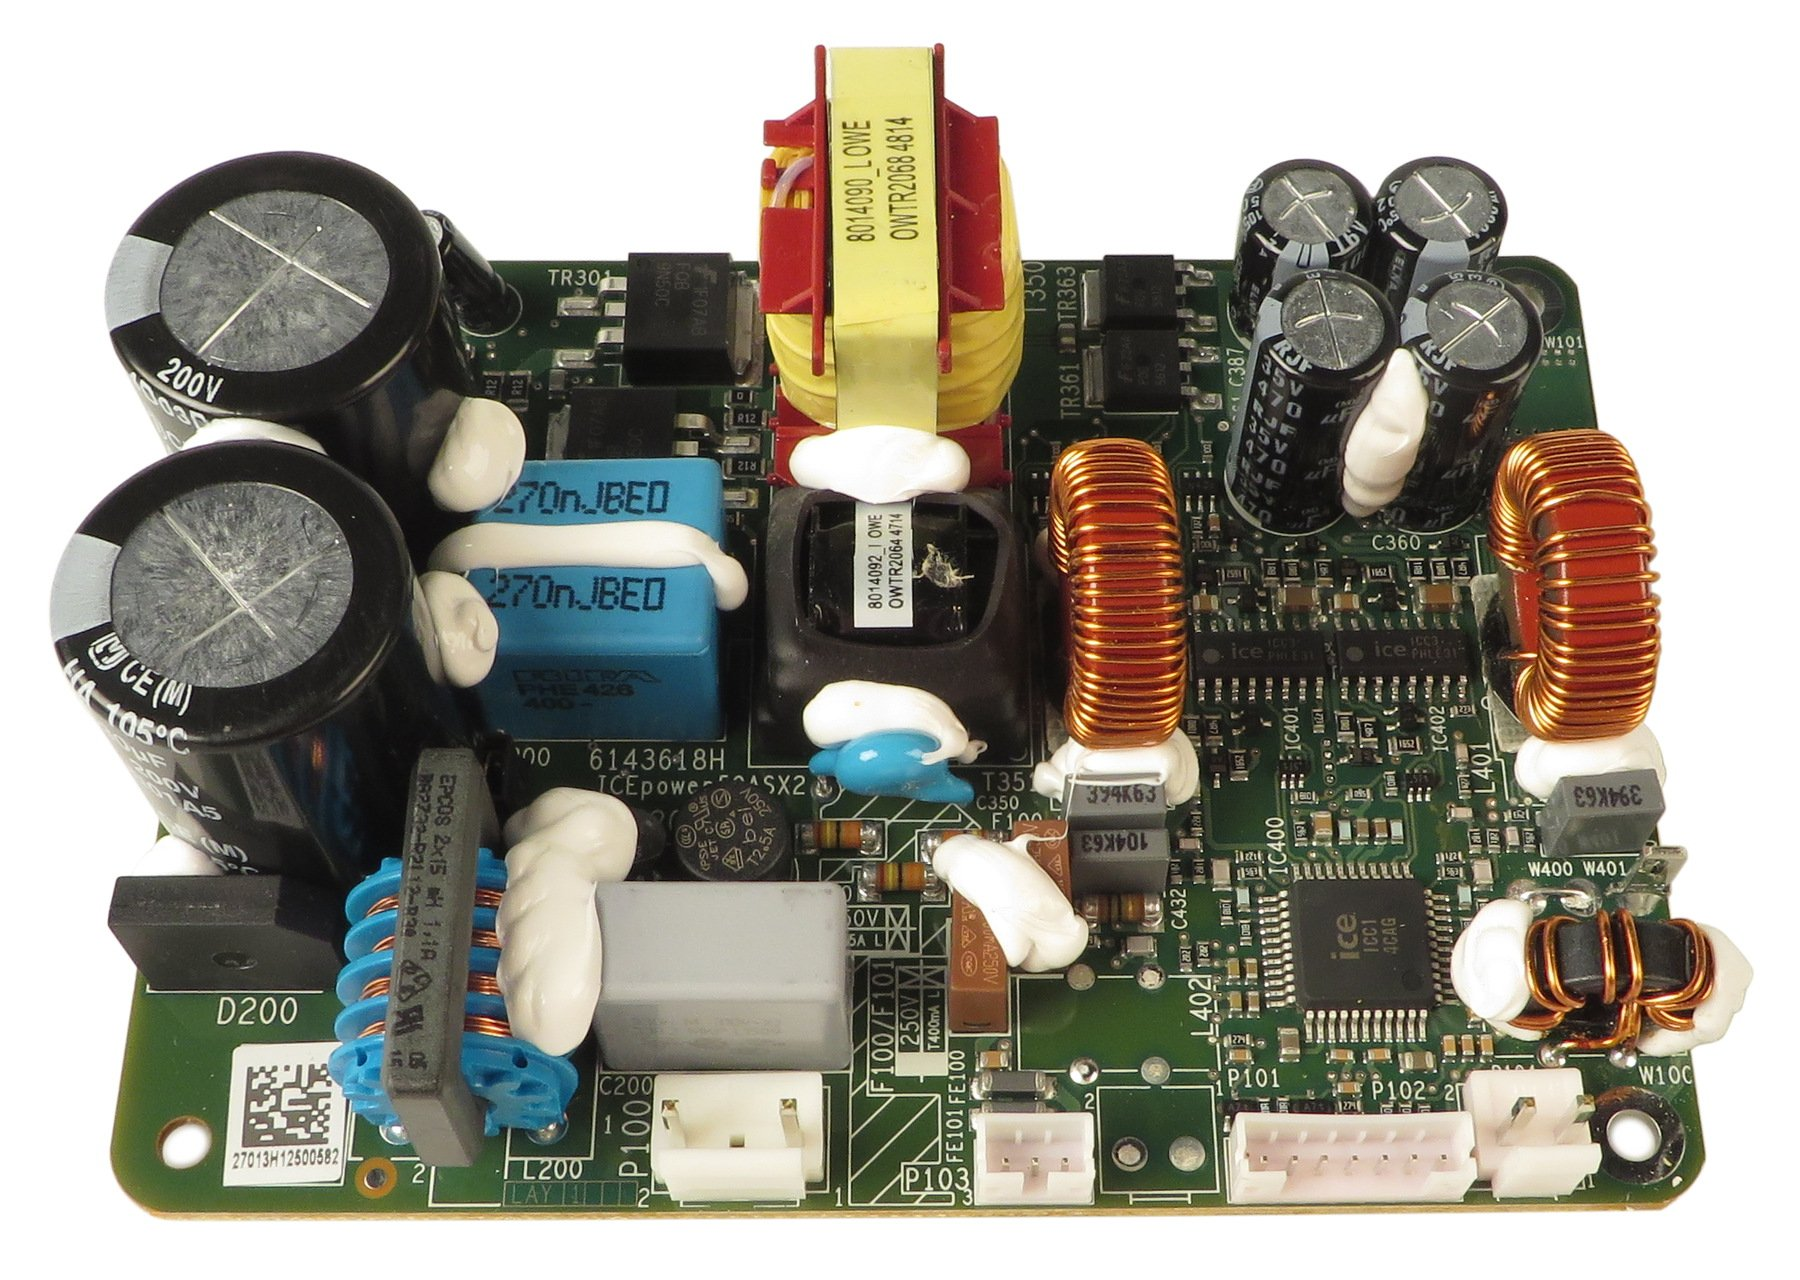 Power Amp Pcb For Mb200 Mb150 Mb112 By Gallien Krueger 206 0521 A Circuit Board Blank